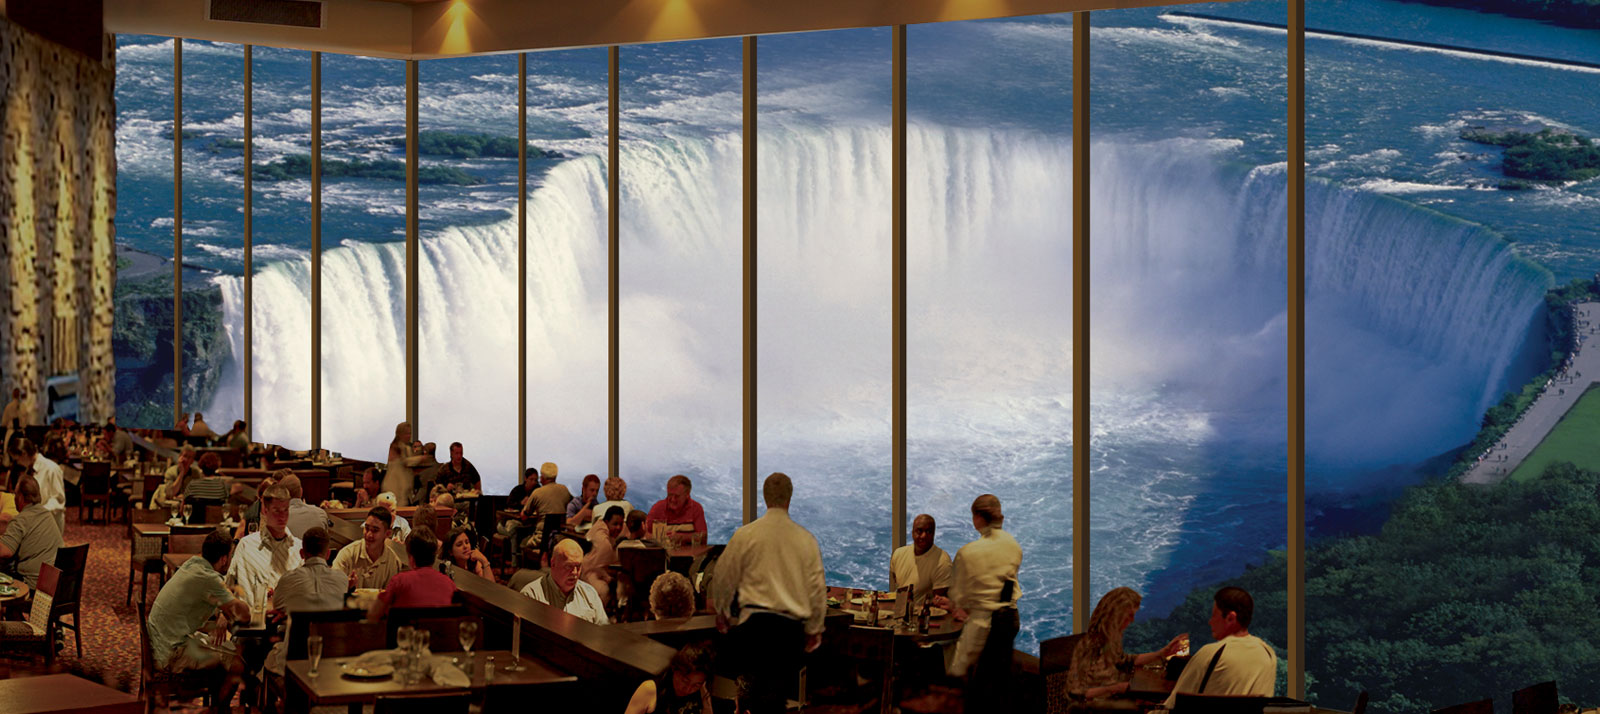 Dine overlooking Niagara Falls - Embassy Suites by Hilton Niagara Falls - Fallsview Hotel, Canada